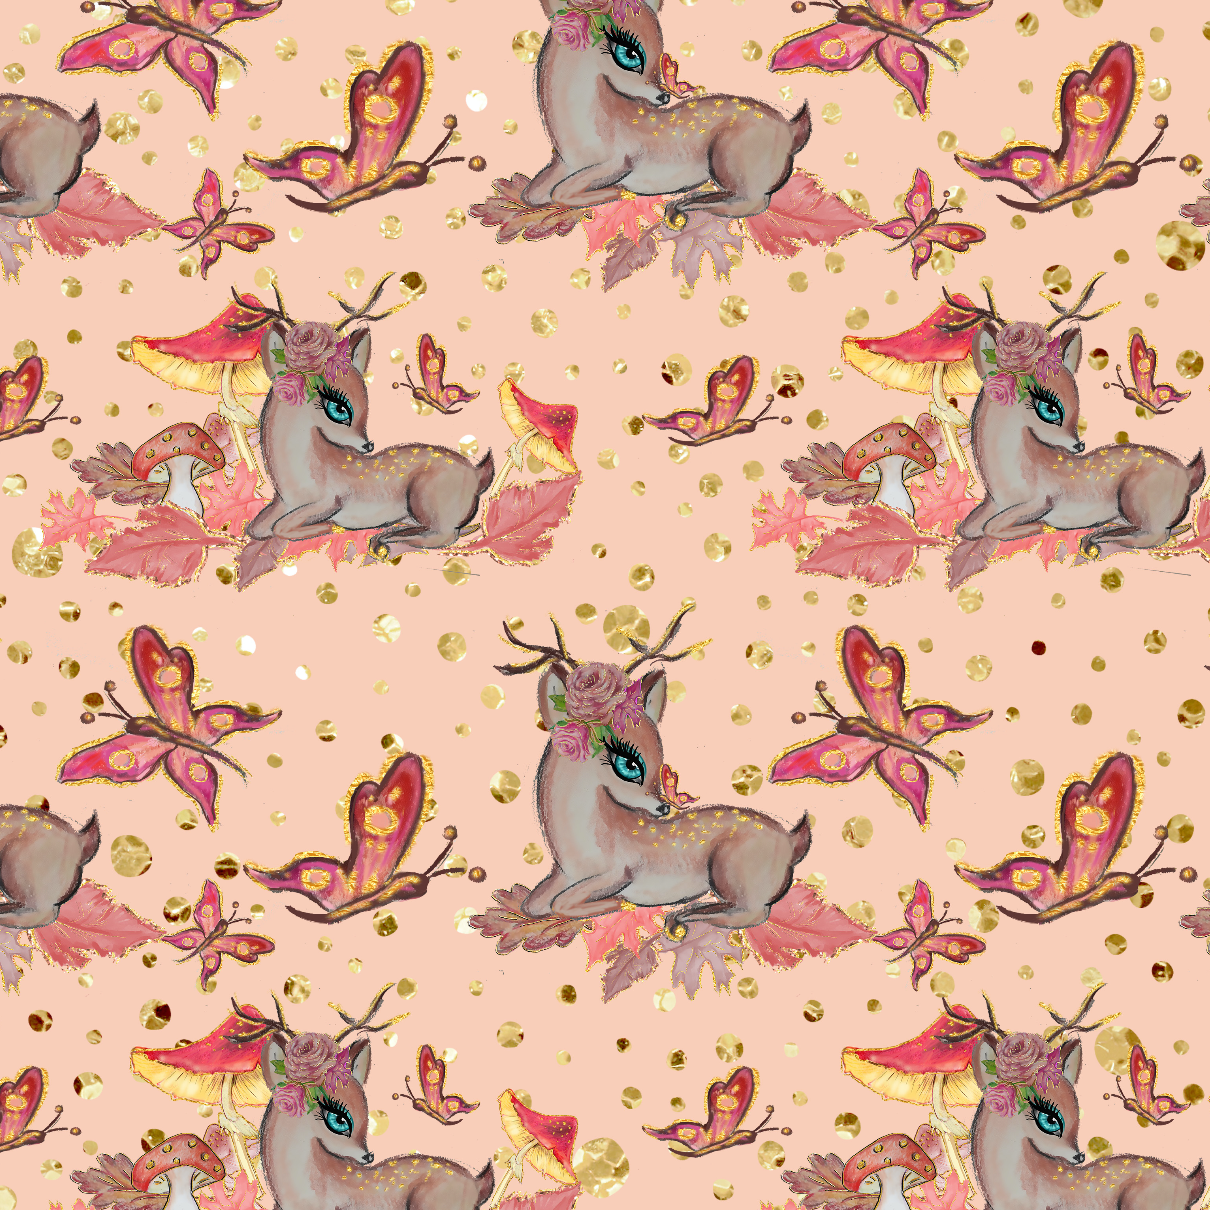 PRE ORDER - Autumn Forest Bambi Pink - Digital Fabric Print